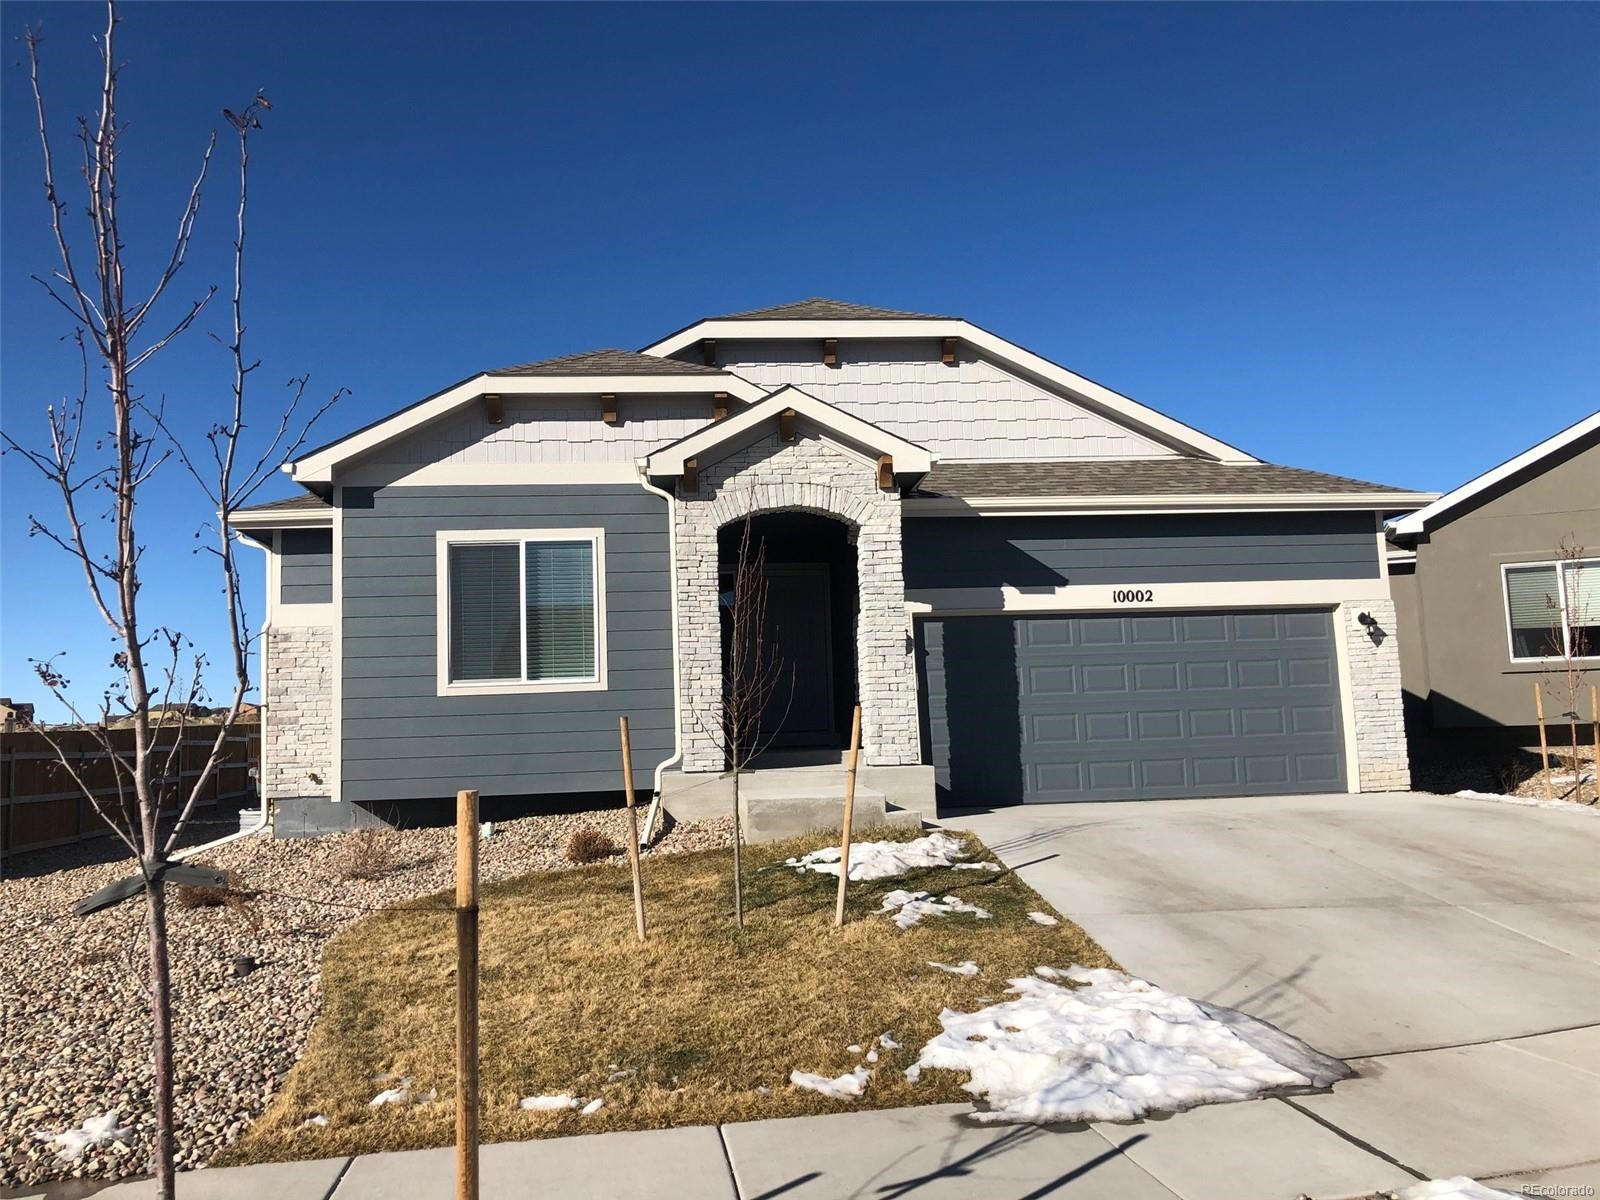 MLS# 3199219 - 26 - 10002 Emerald Vista Drive, Peyton, CO 80831